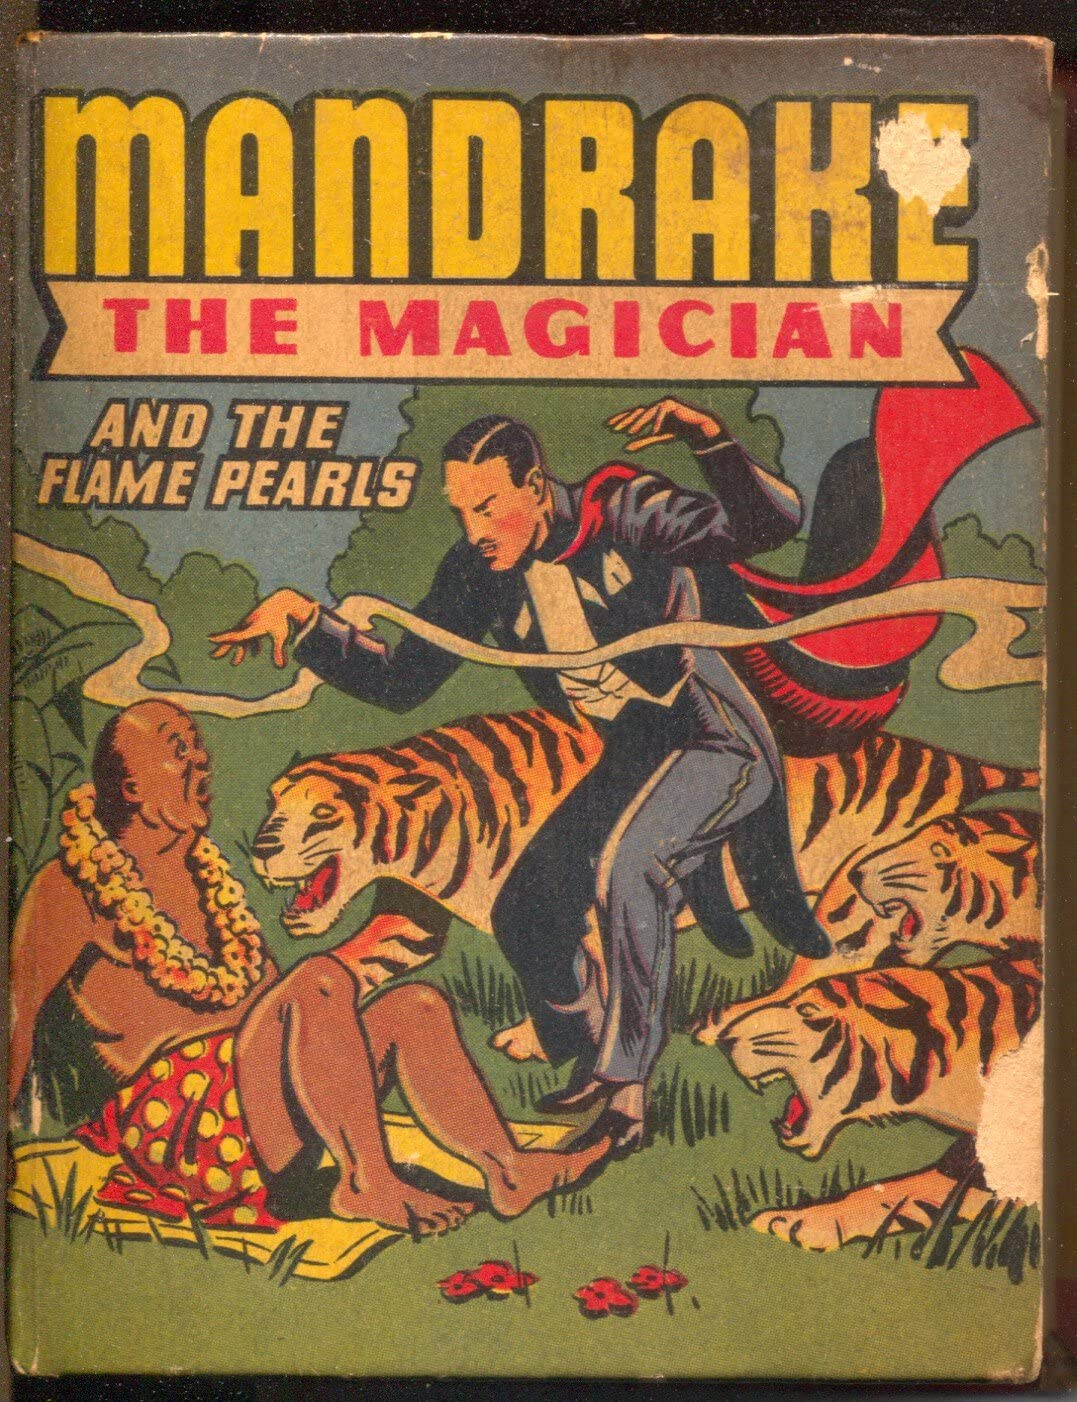 Mandrake the Magician and the Flame Pearls